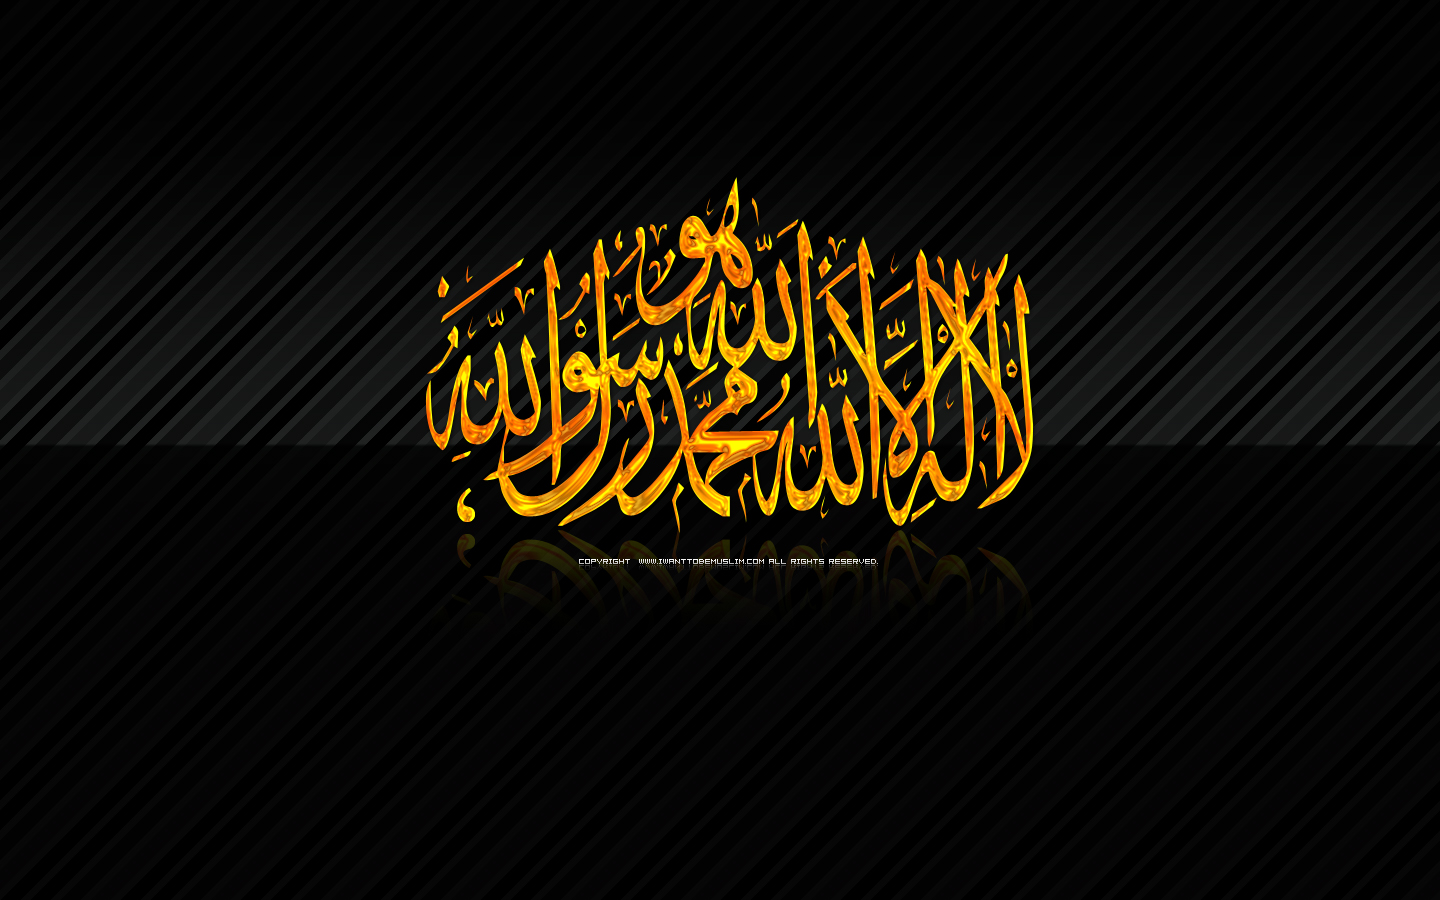 Download Islamic Wallpaper Hd Widescreen